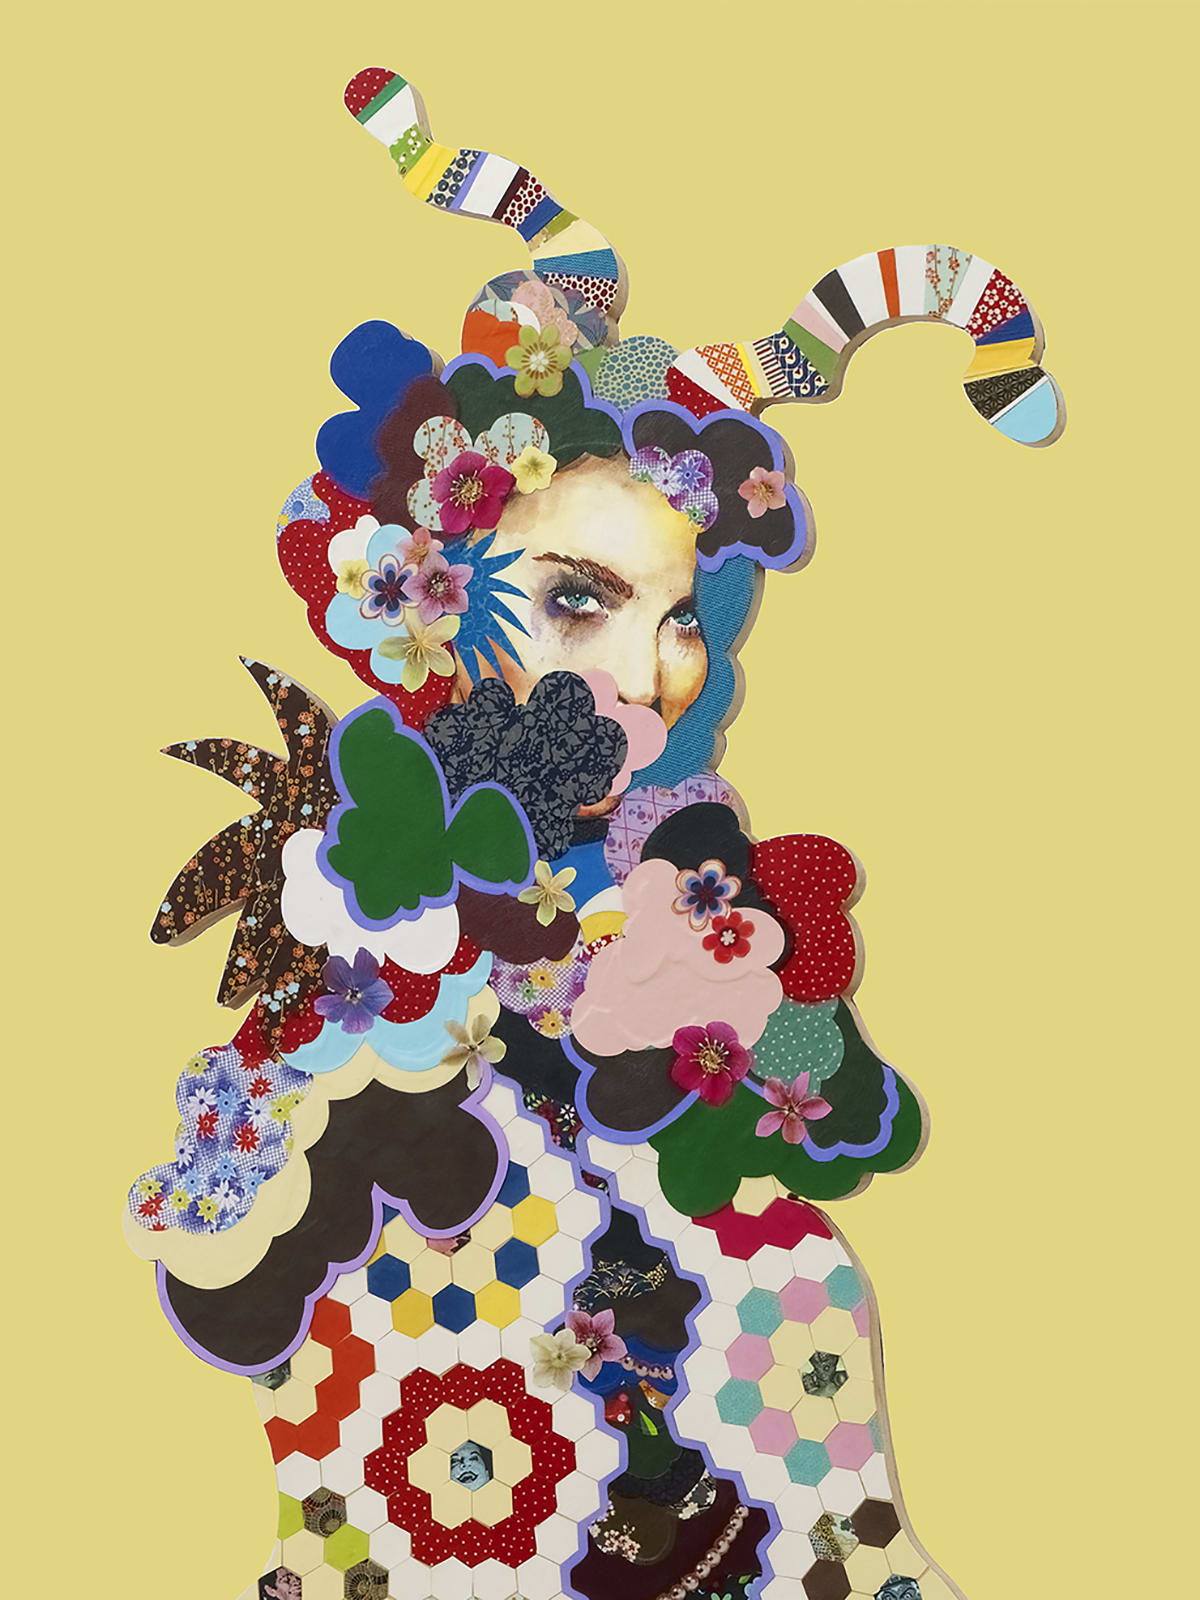 Fort Worth Contemporary Arts presents Flâneuse